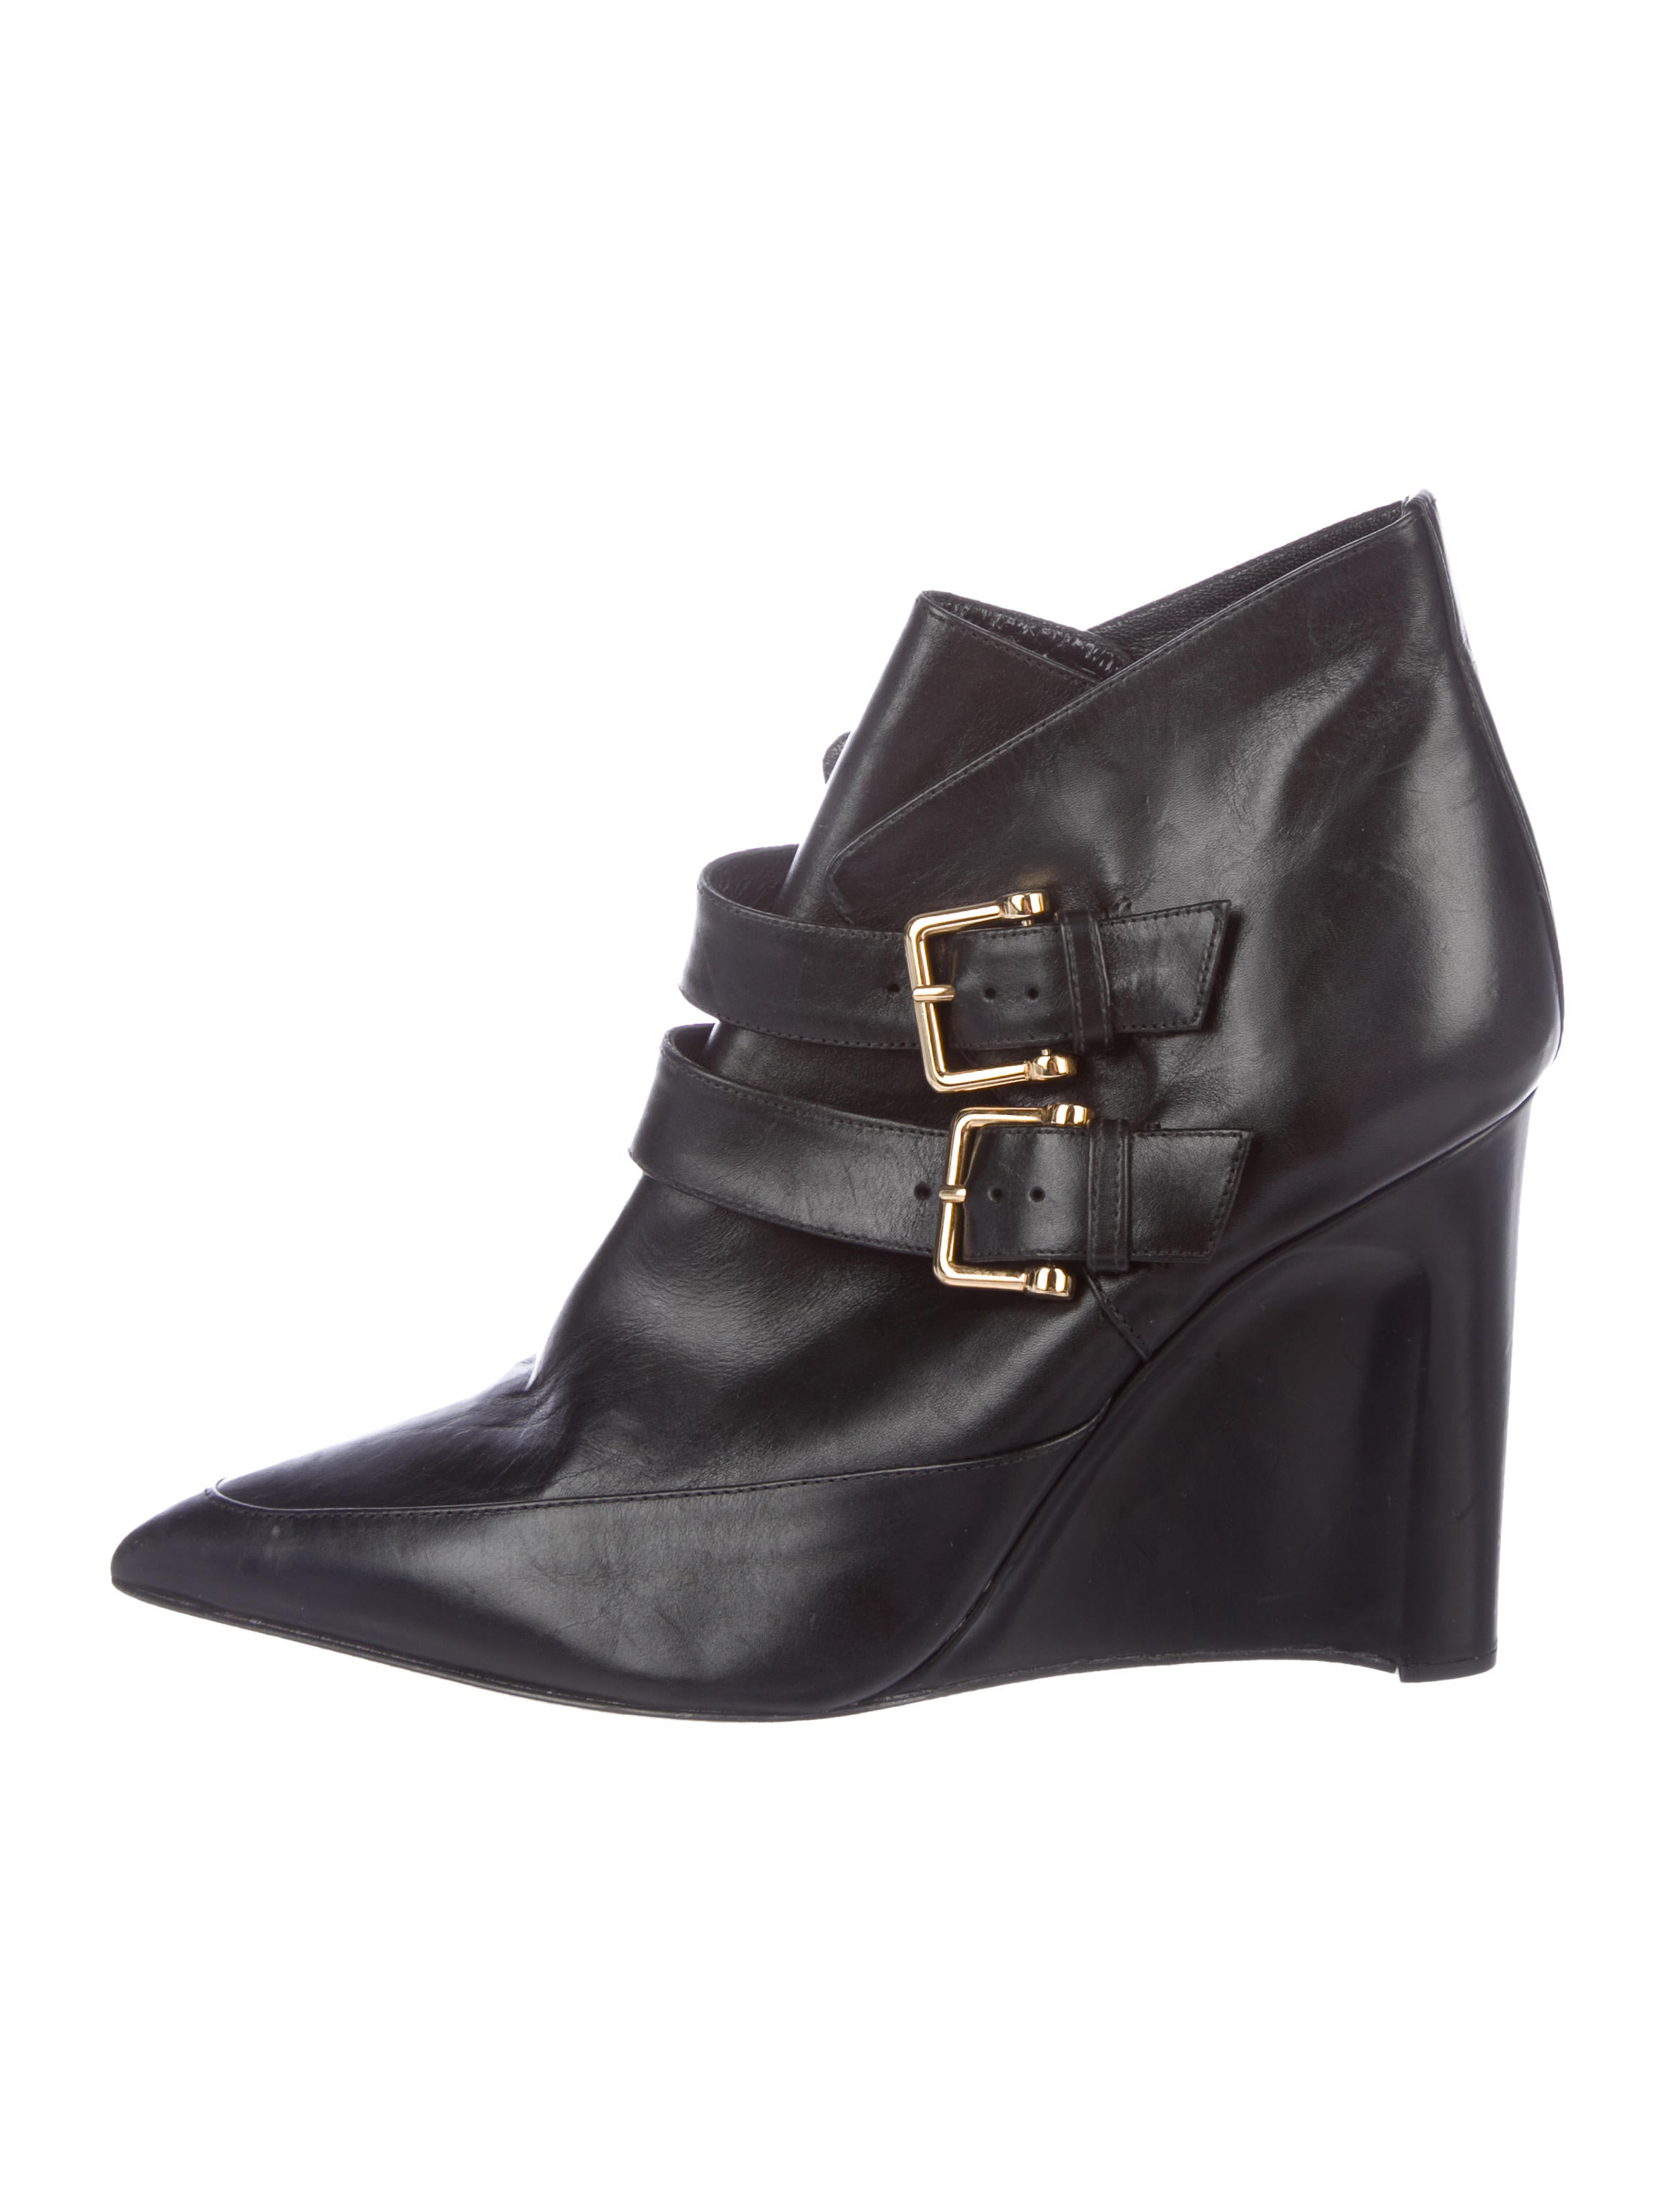 Derek Lam Leather Wedge Booties 2015 for sale sale new arrival cheap sale best peOhkM3